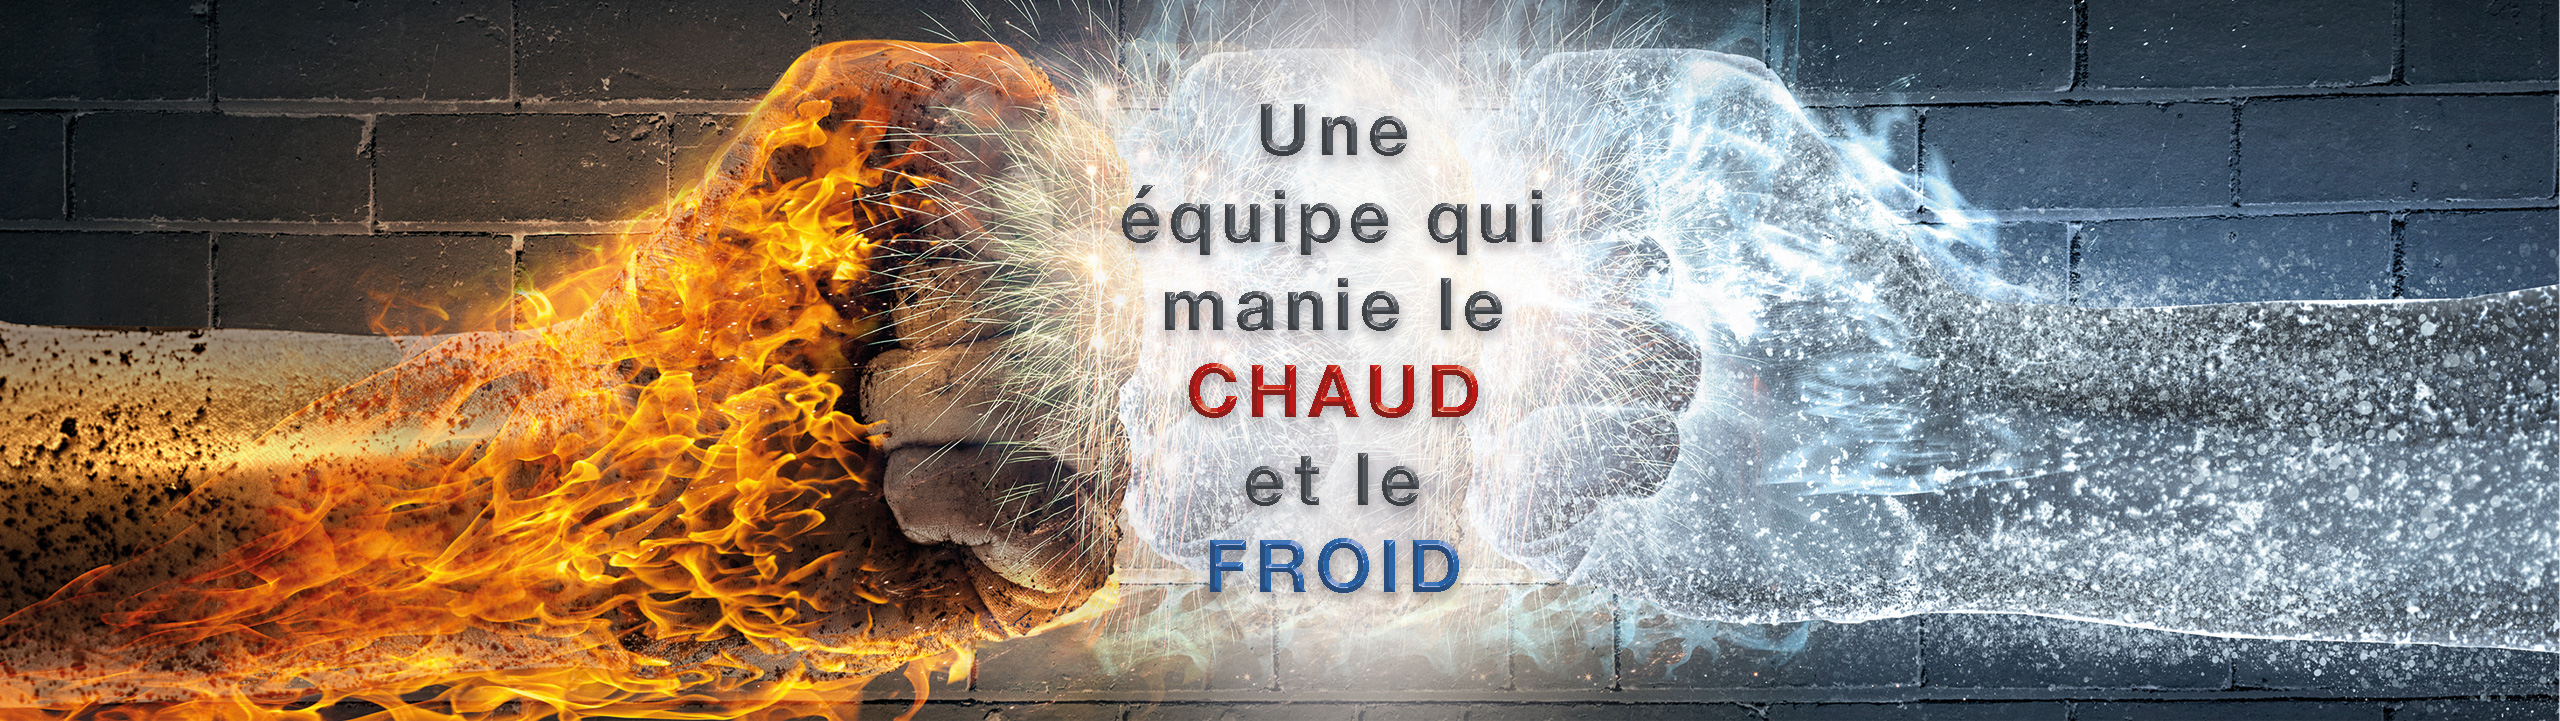 Chaud et Froid